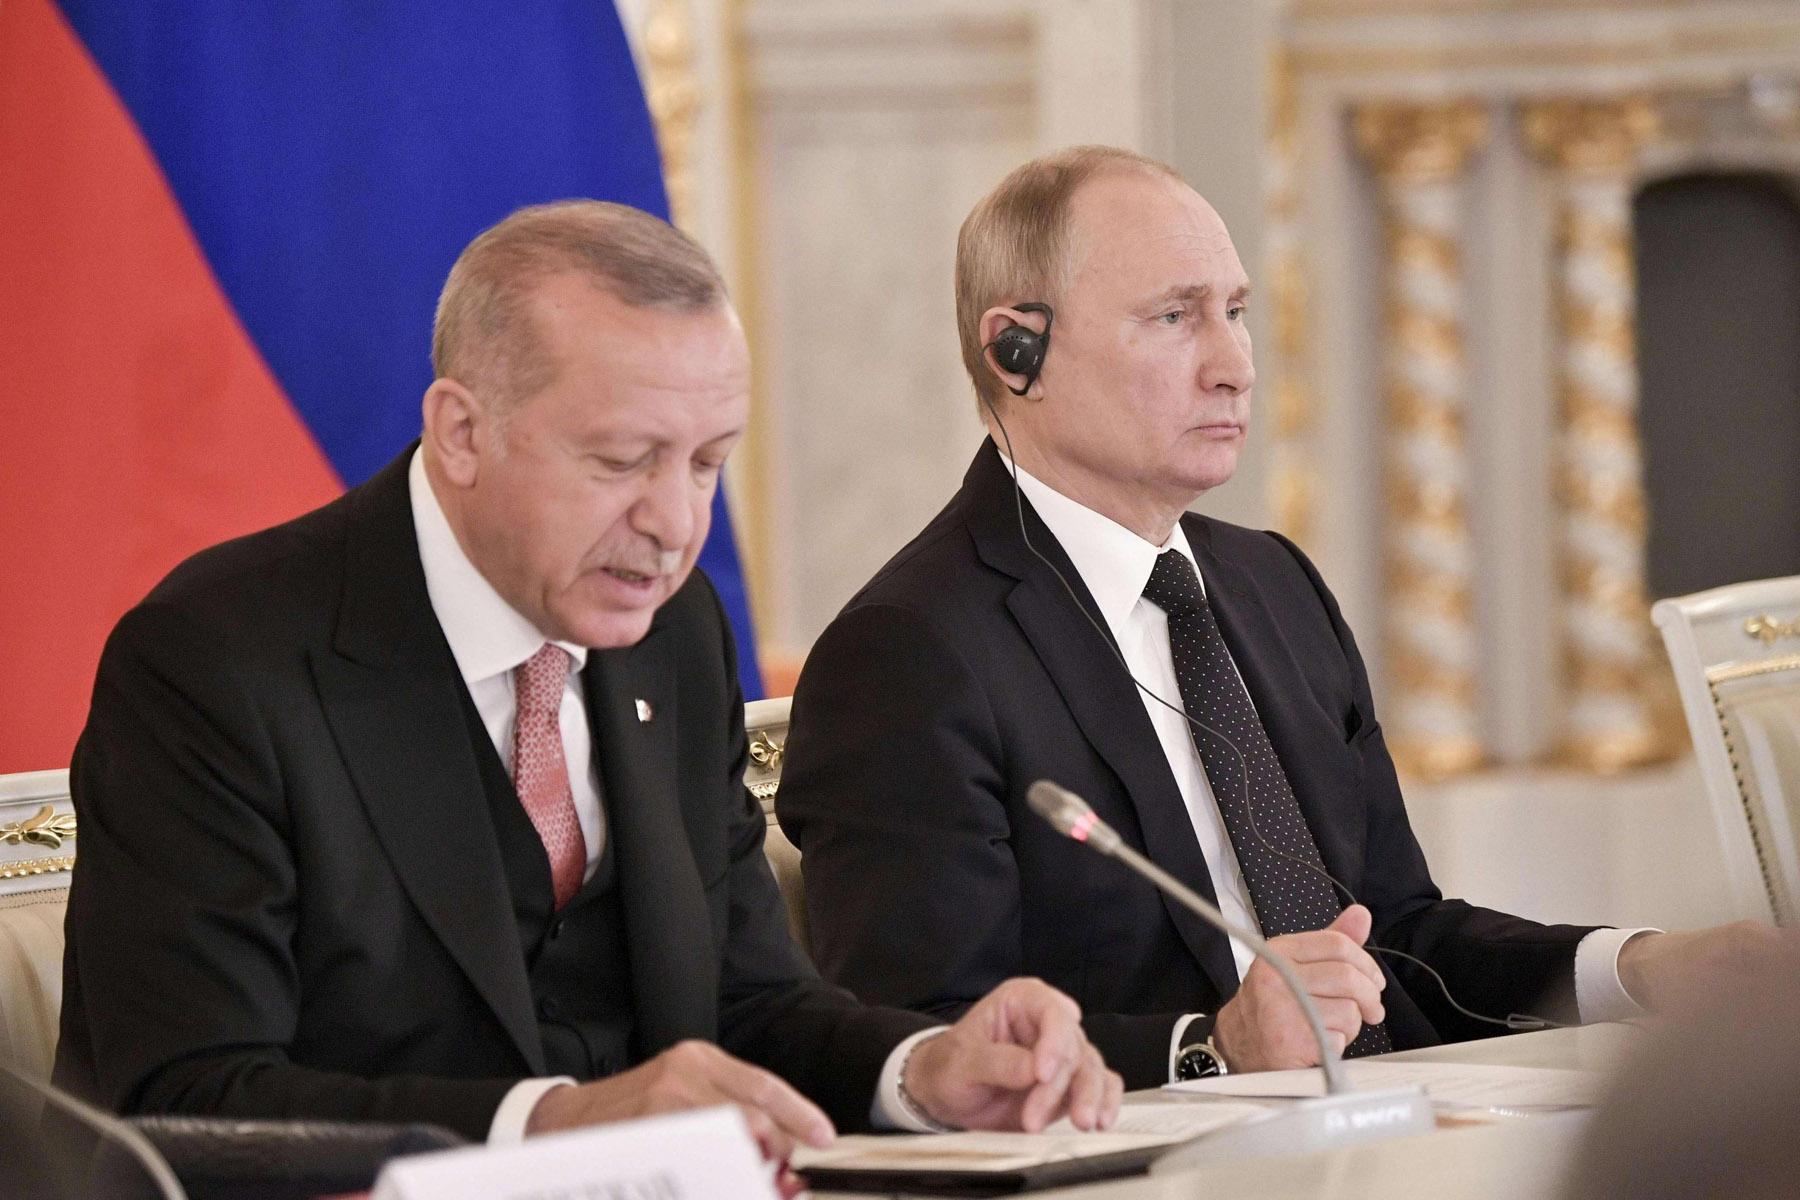 Turkish President Recep Tayyip Erdogan (L) speaks next to Russian President Vladimir Putin during a meeting in Moscow, April 8. (AFP)